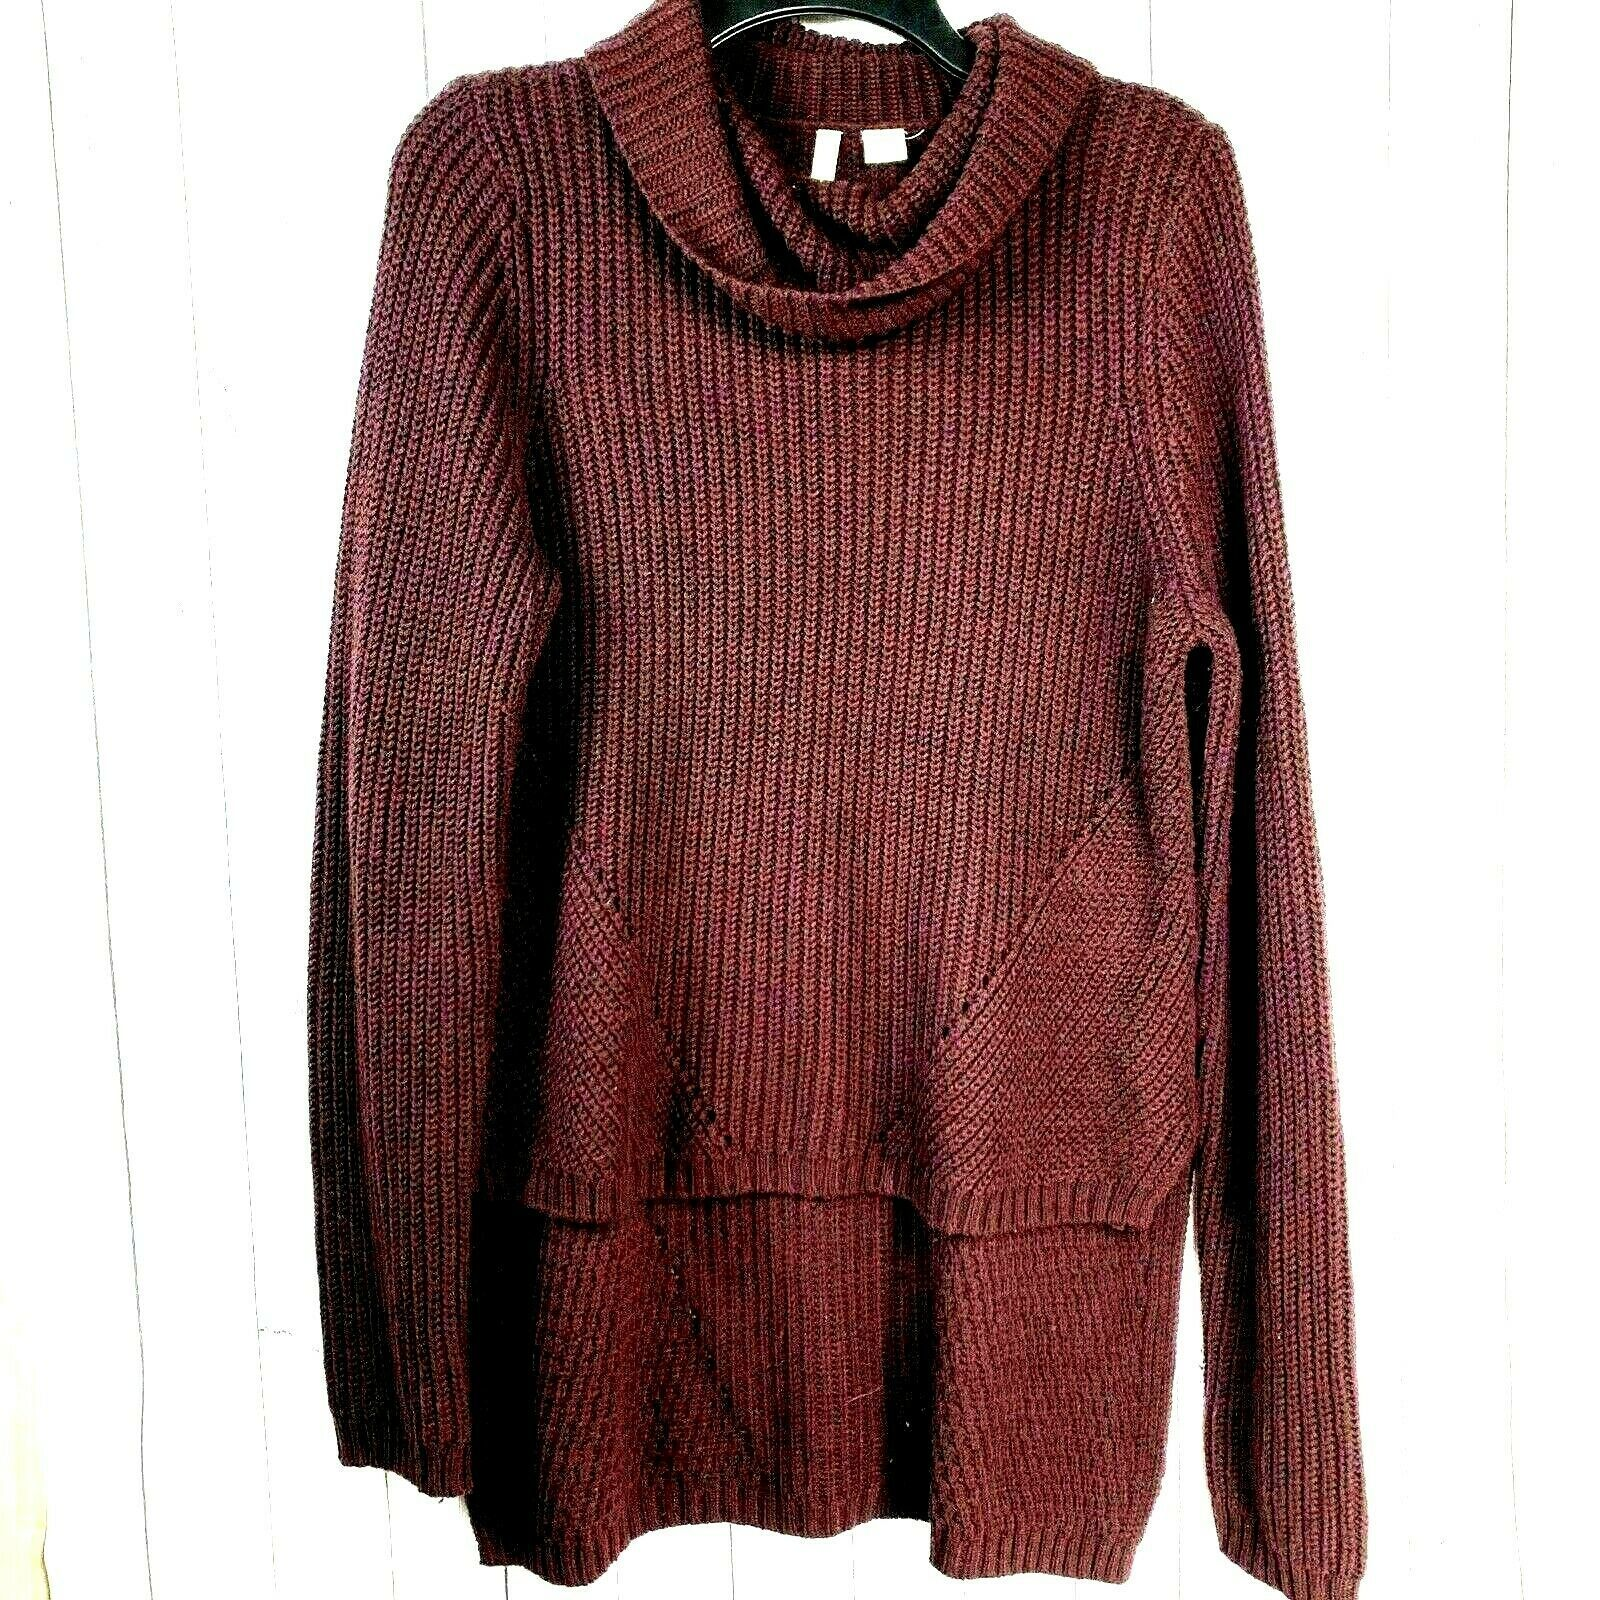 Primary image for Anthropologie MOTH sweater maroon purple hi lo Cowl neck Wool blend women medium